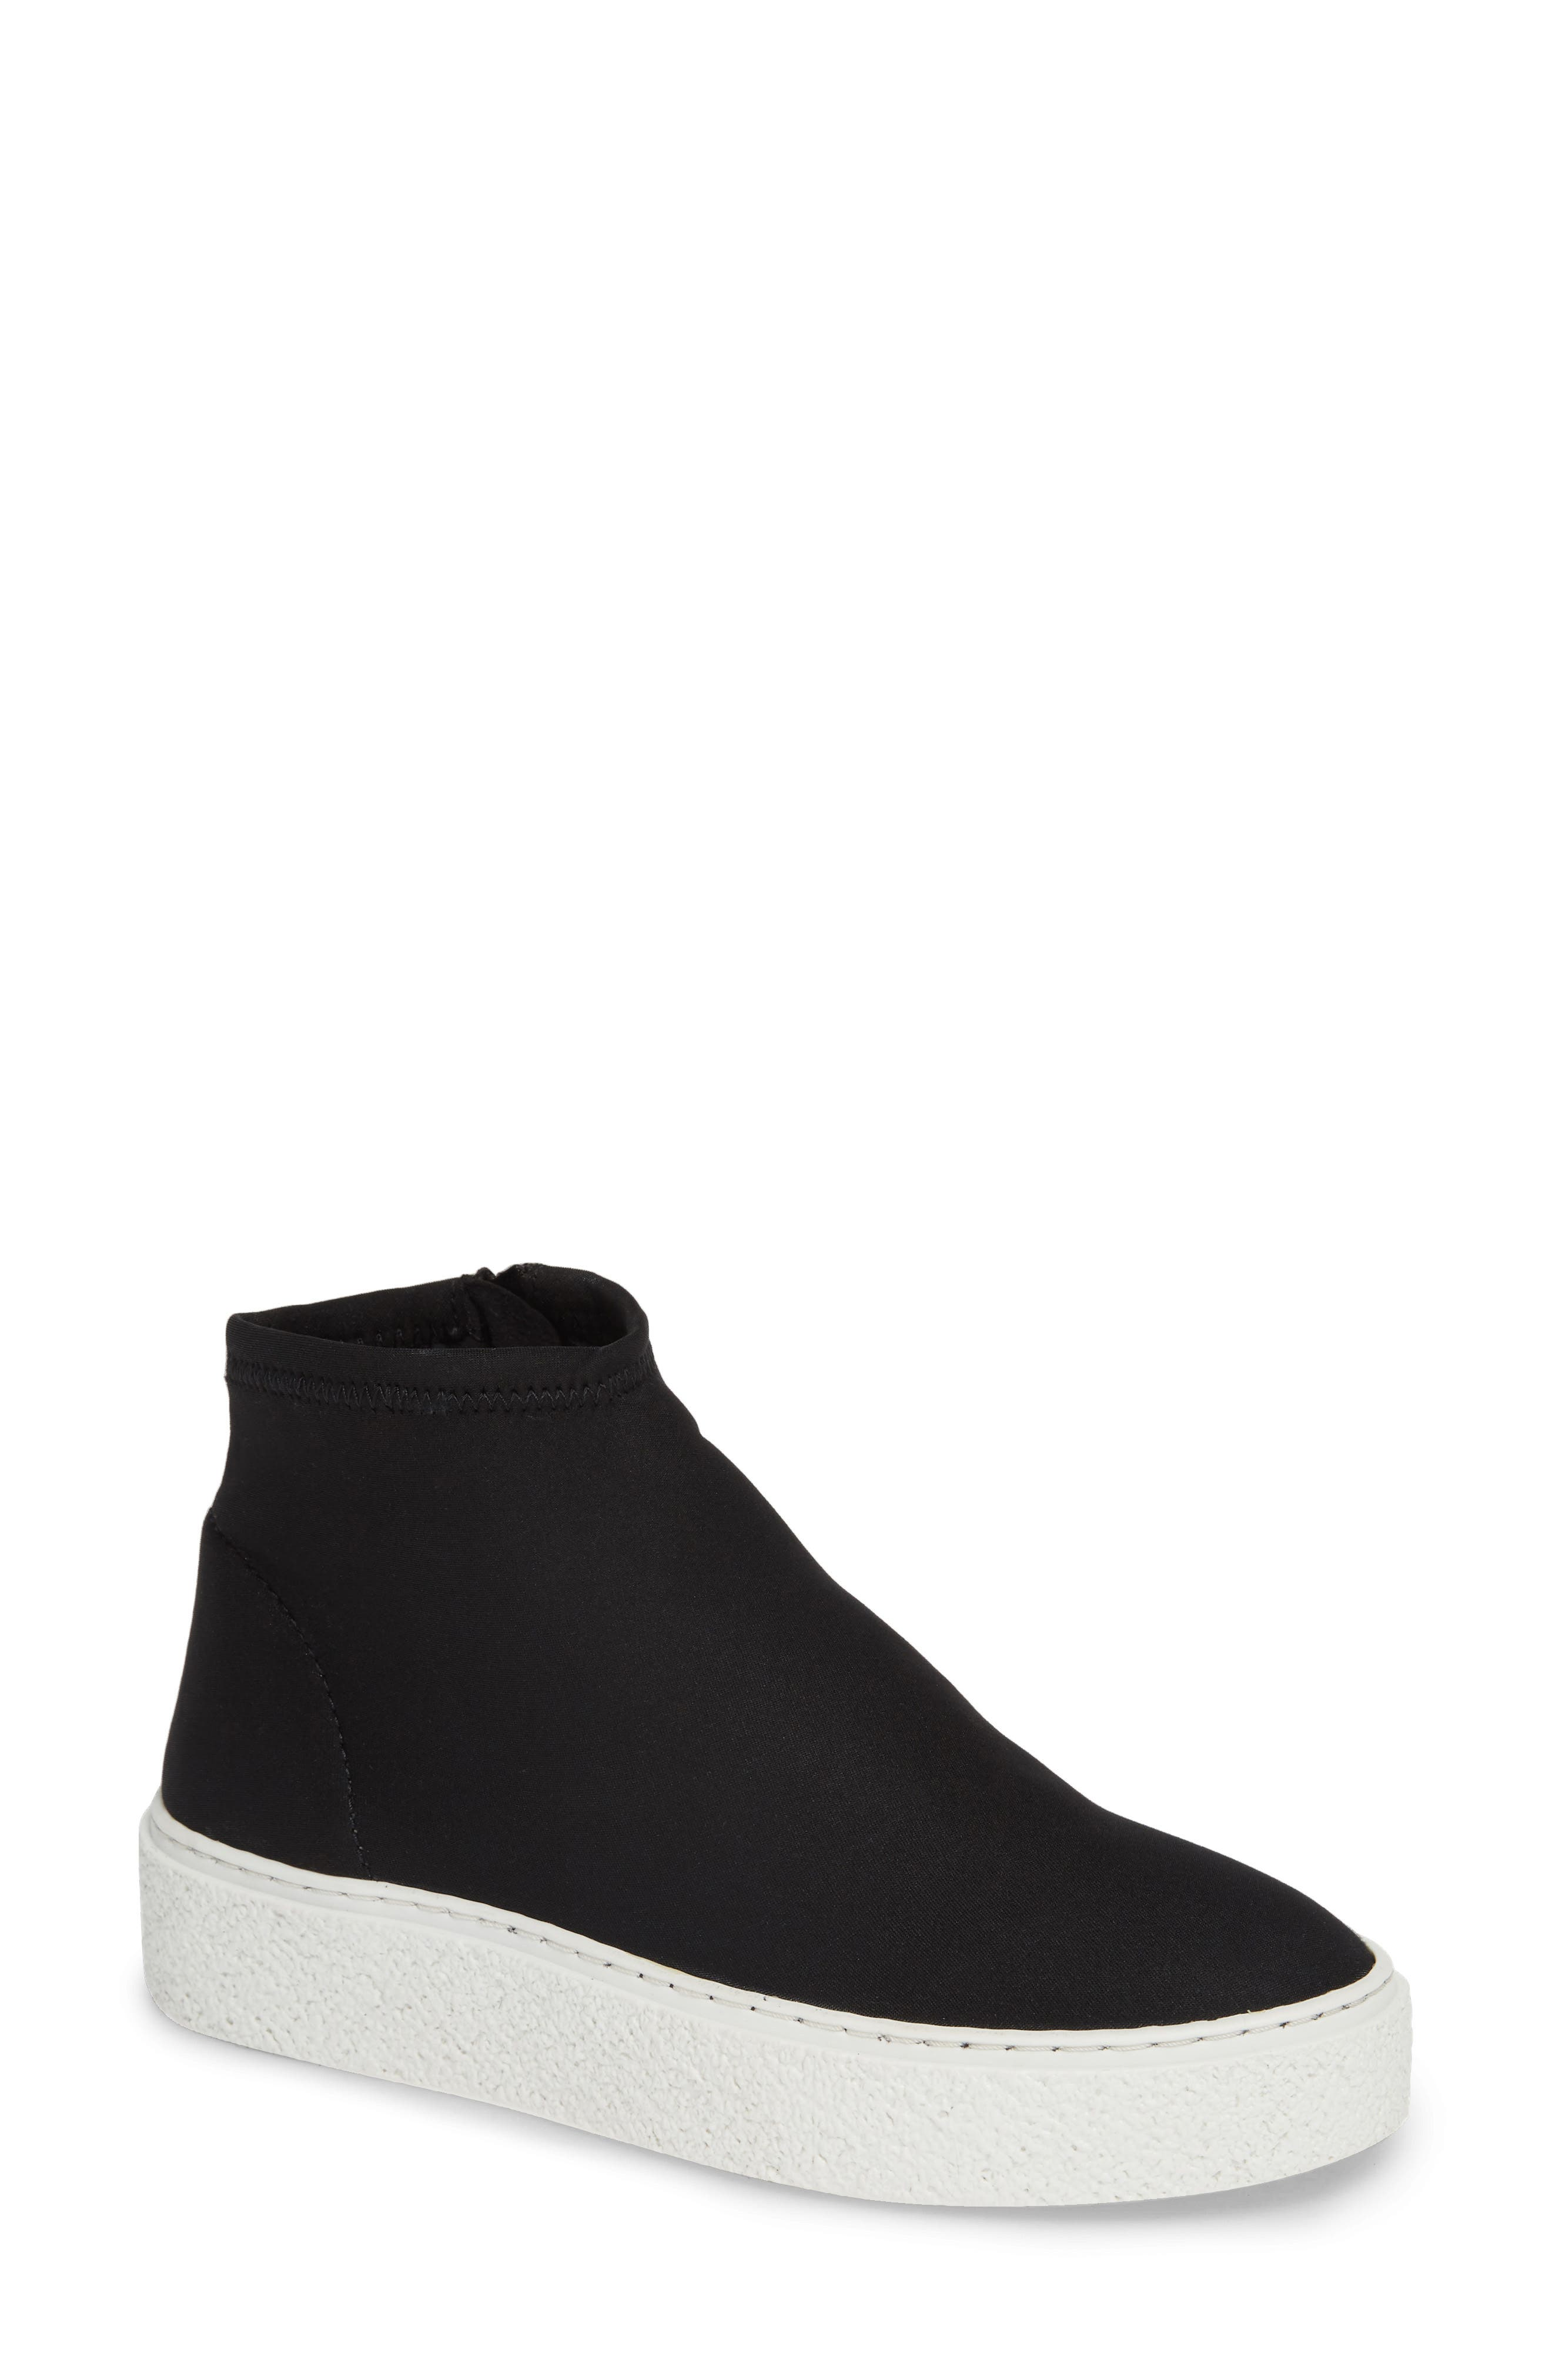 Inventive High Top Sneaker,                             Main thumbnail 1, color,                             BLACK NEOPRENE FABRIC